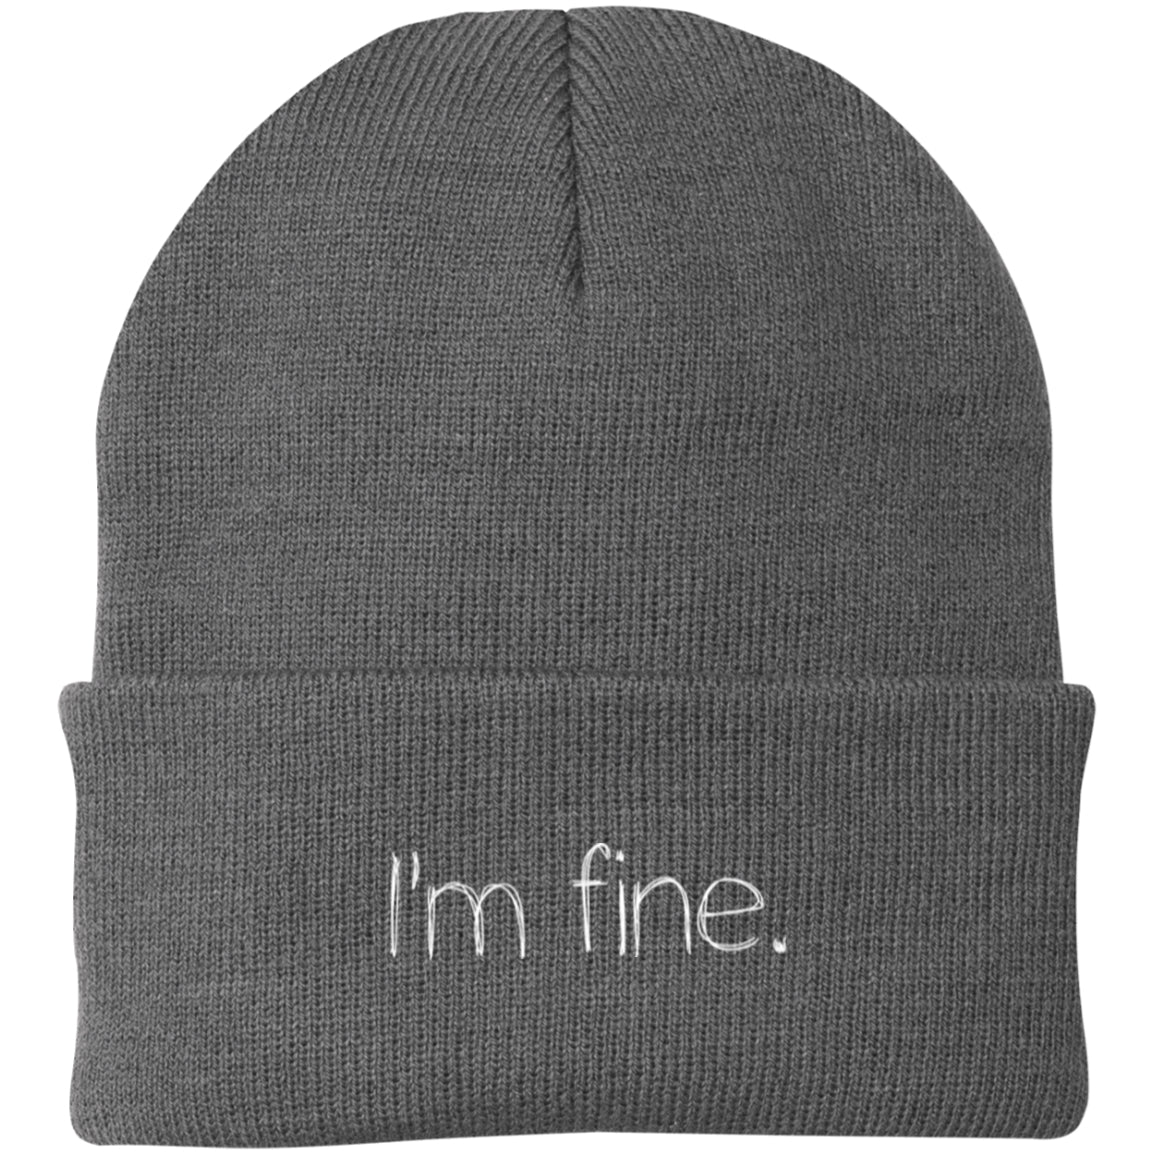 Im fine Knit Cap - The Unchargeables